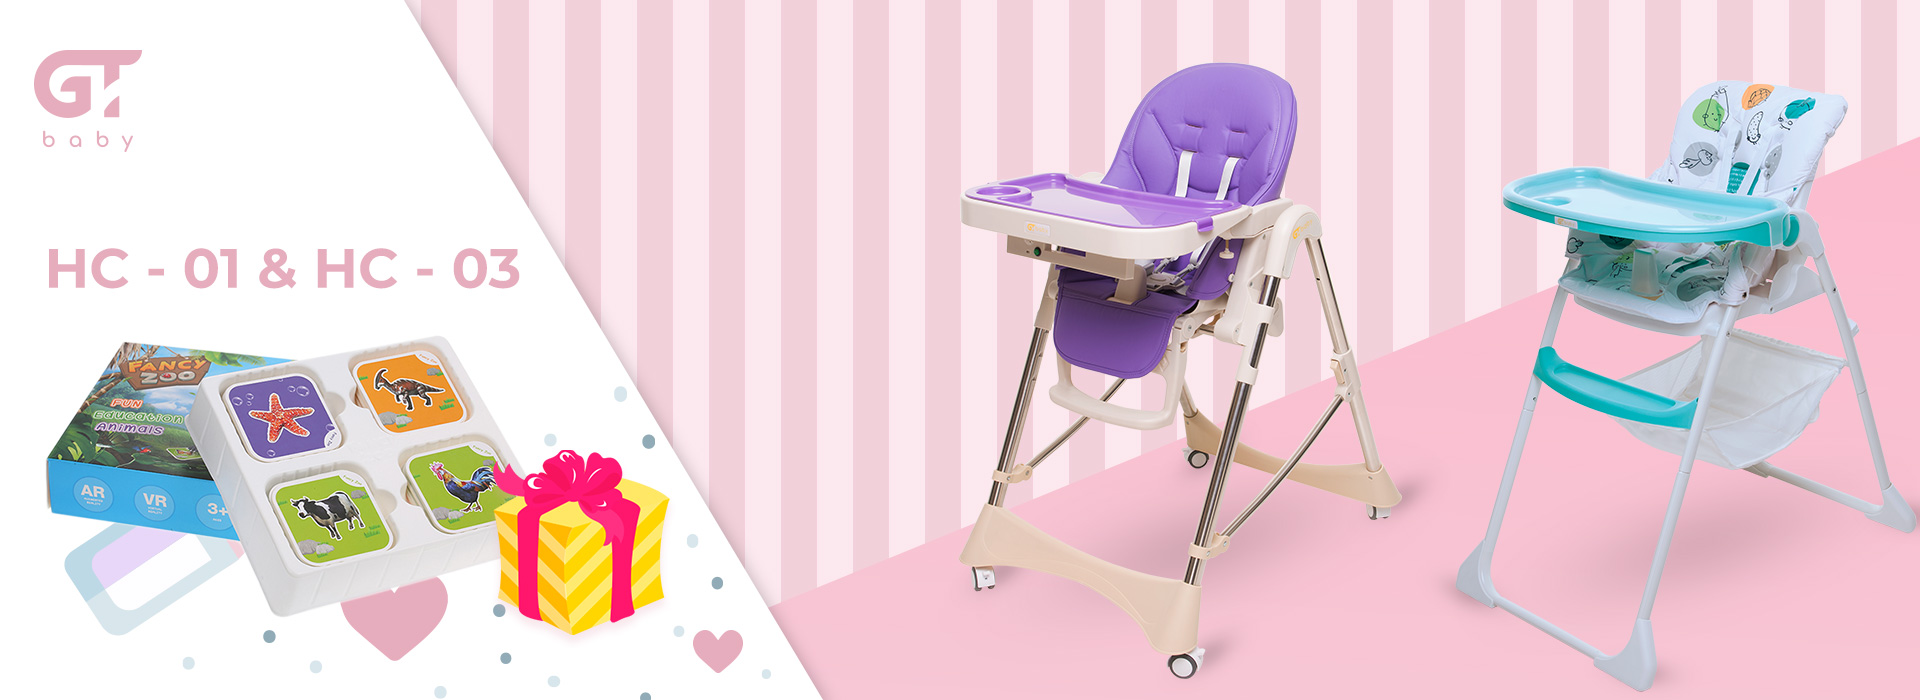 Stock! Game Fancy Zoo as a gift to the GT Baby highchairs and strollers!